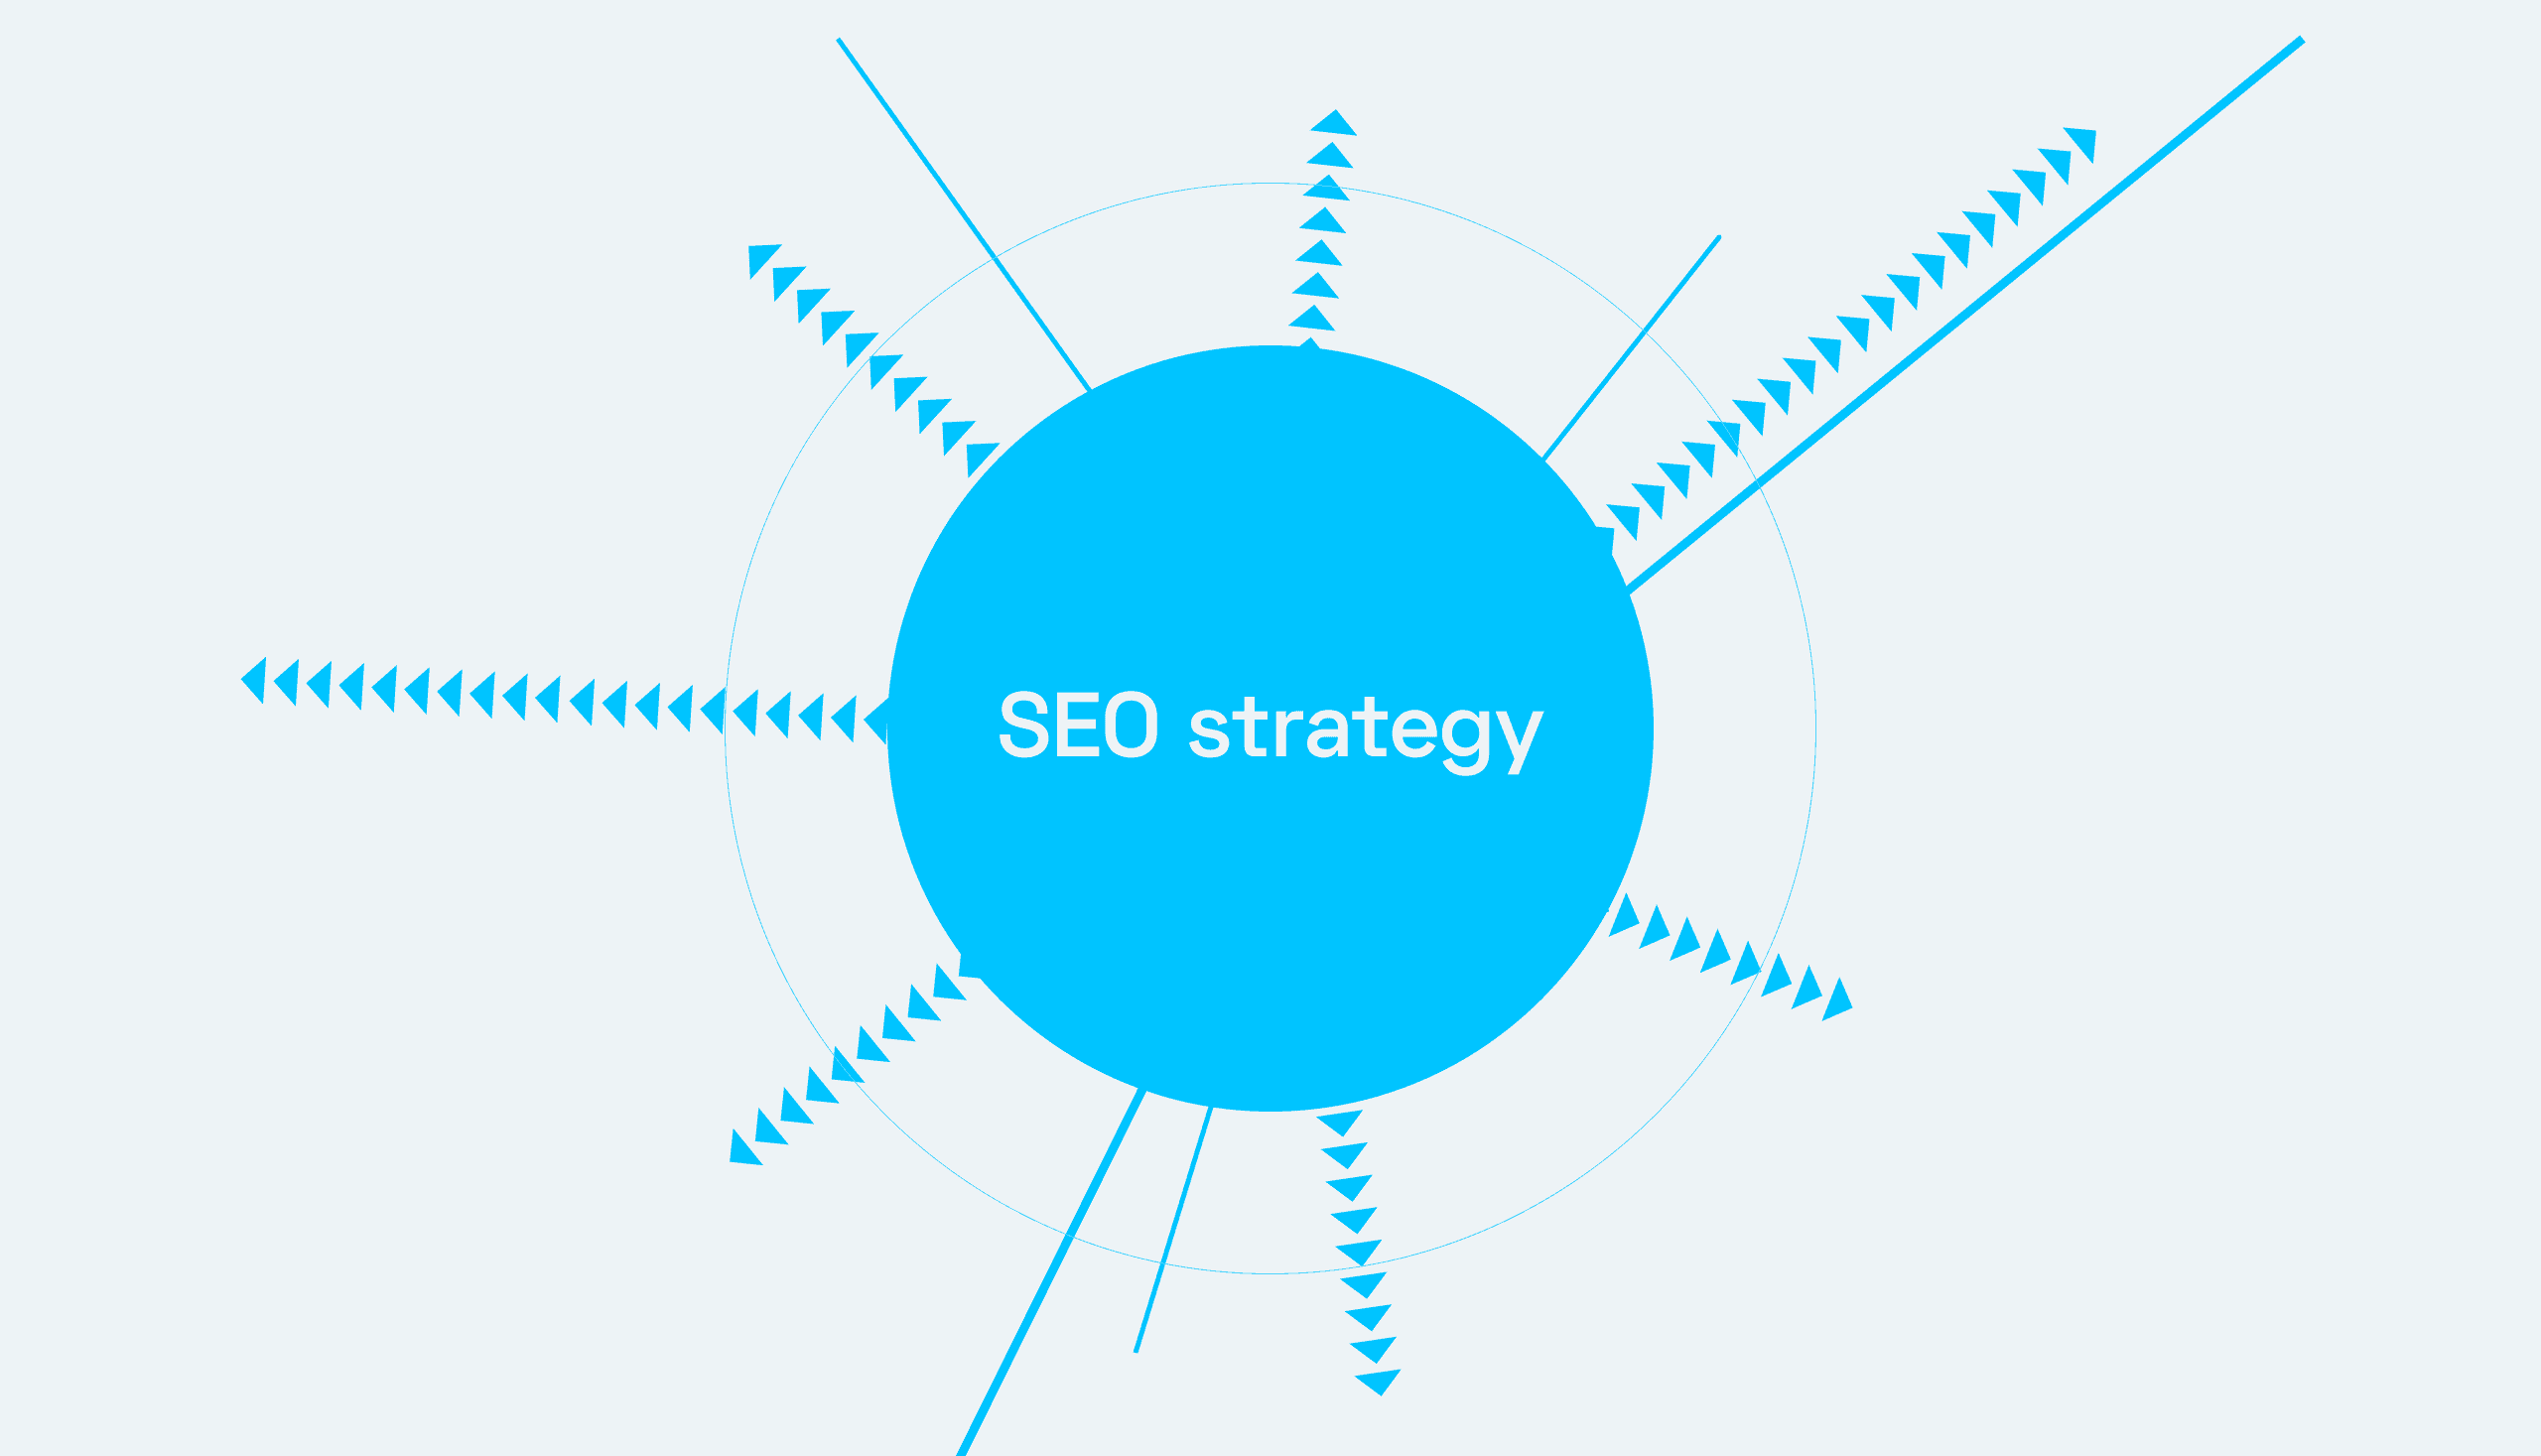 Create an SEO strategy to benefit your business [2021 guide]